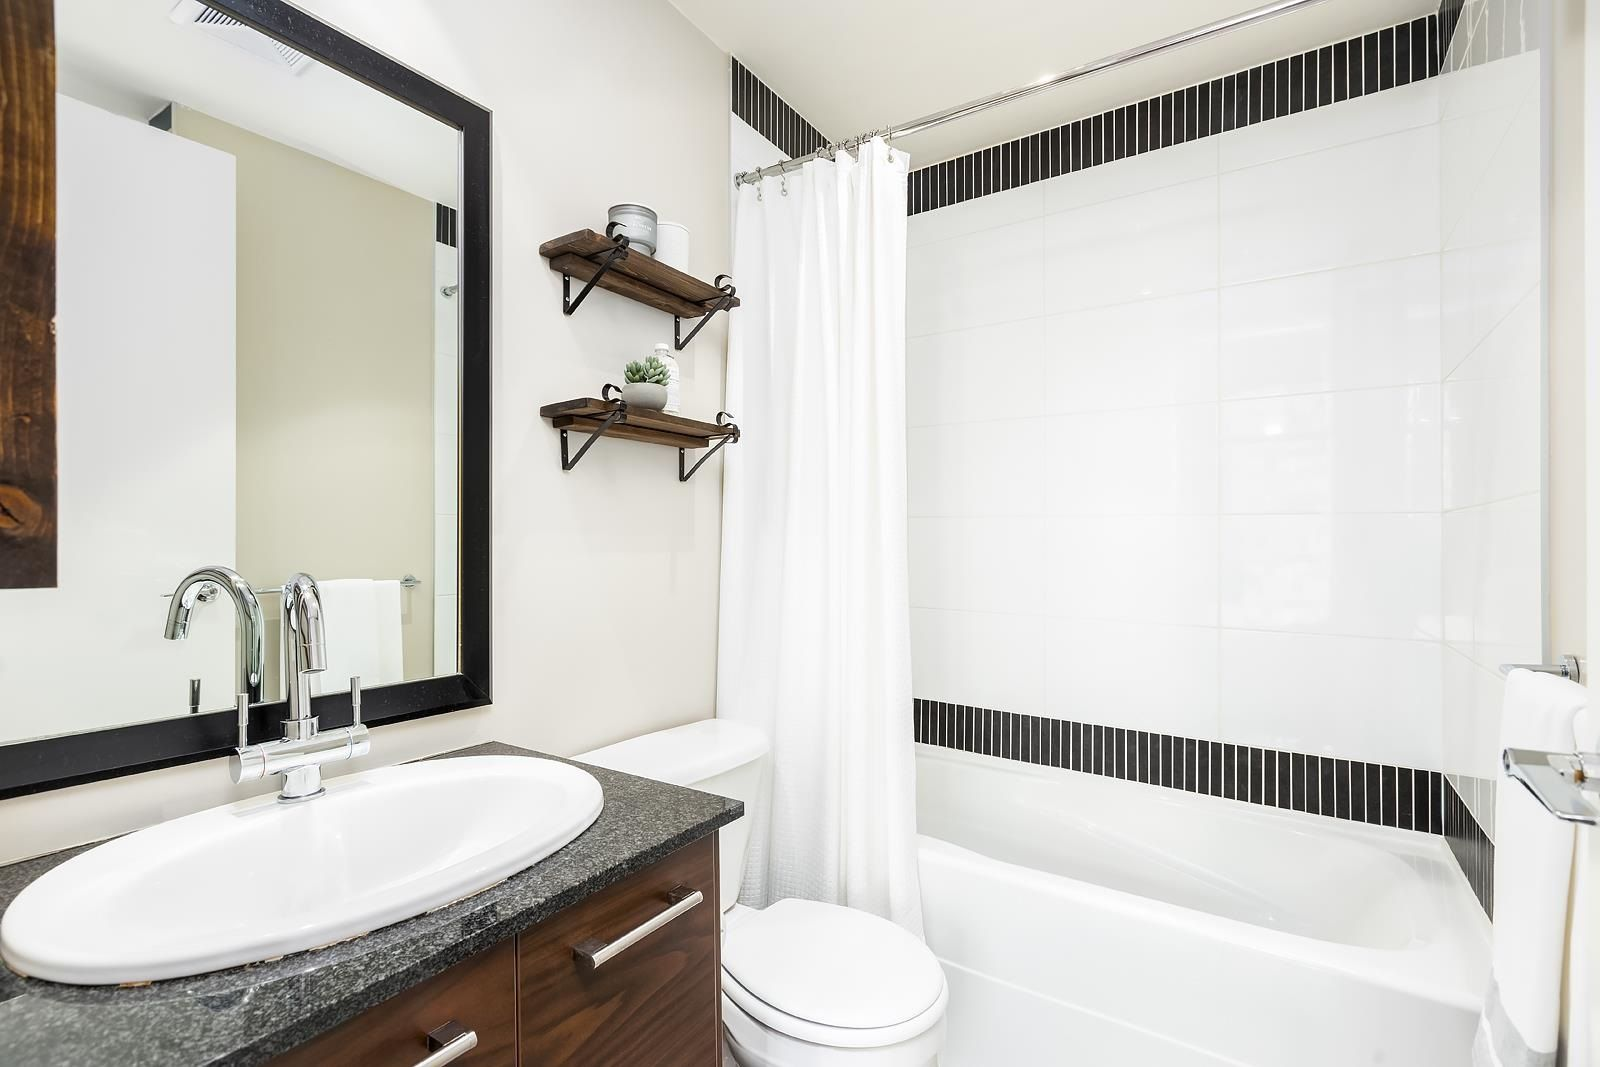 """Photo 22: Photos: 506 2345 MADISON Avenue in Burnaby: Brentwood Park Condo for sale in """"ONE MADISON AVENUE"""" (Burnaby North)  : MLS®# R2601656"""